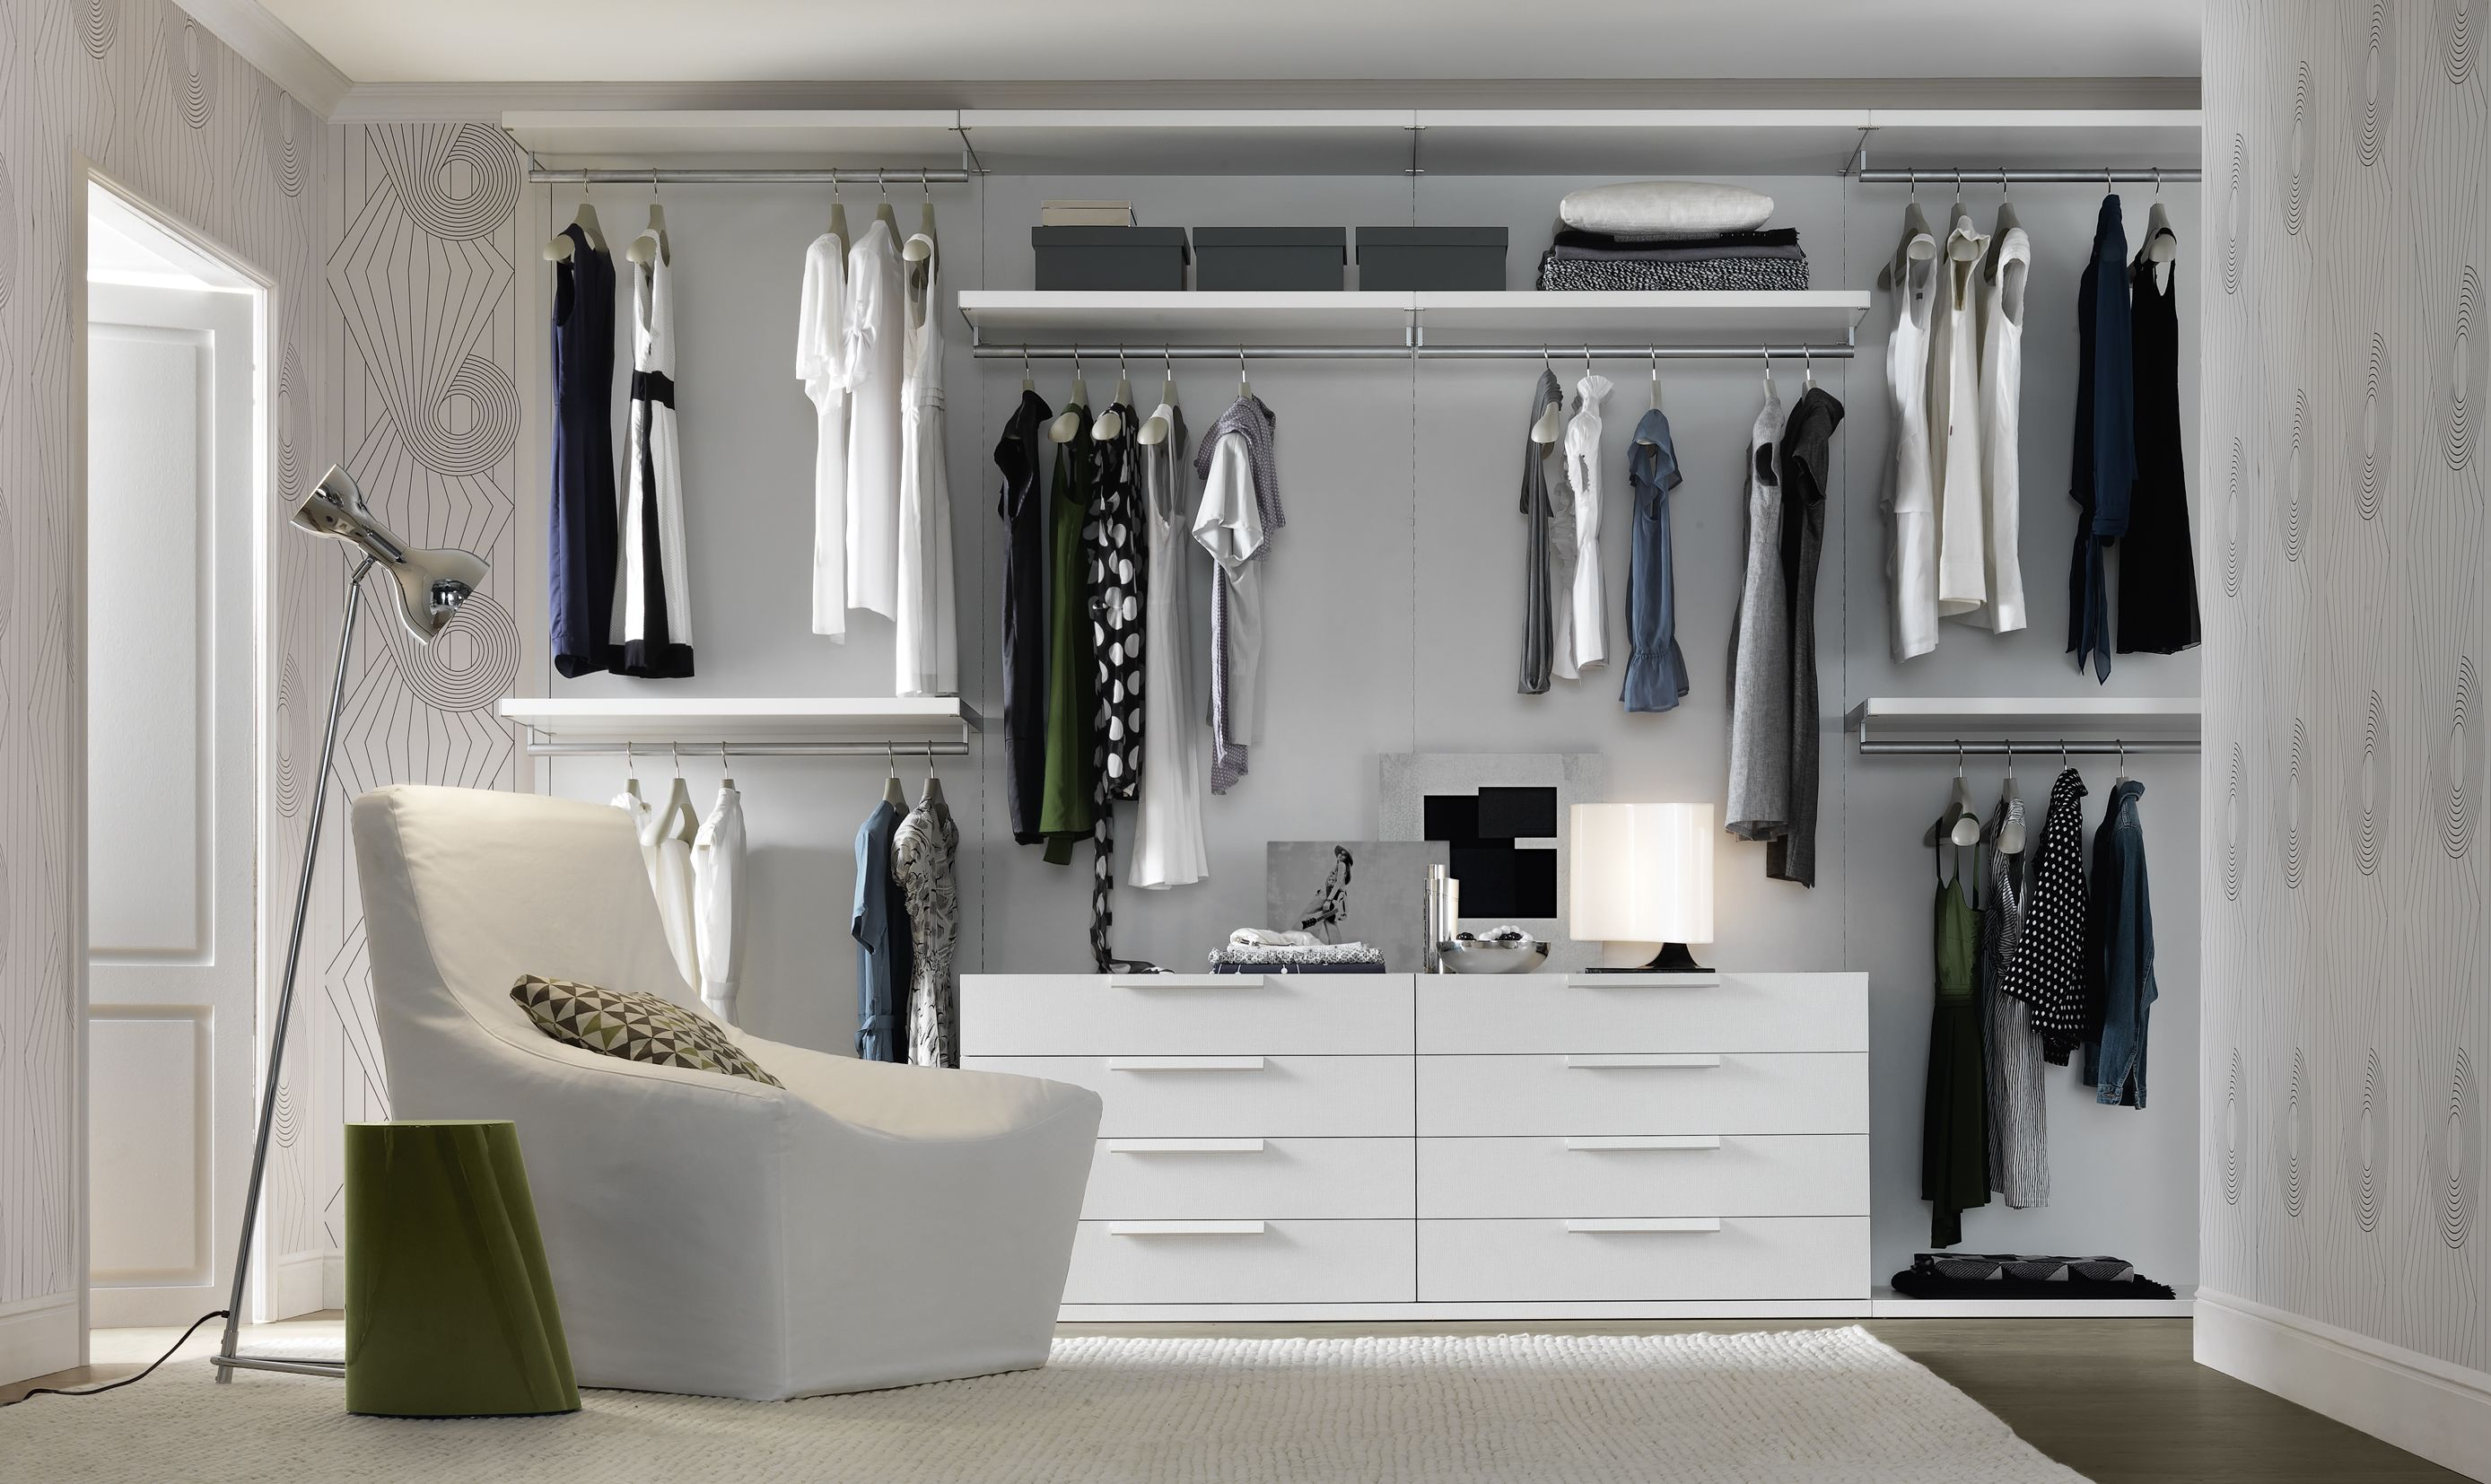 Ikea Closet Design Ideas 1000 images about wardrobe on pinterest ikea wardrobe shelves and wardrobes 51 Best Ideas About Closets On Pinterest Overlays Mirrored Closet Doors And Wooden Closet 51